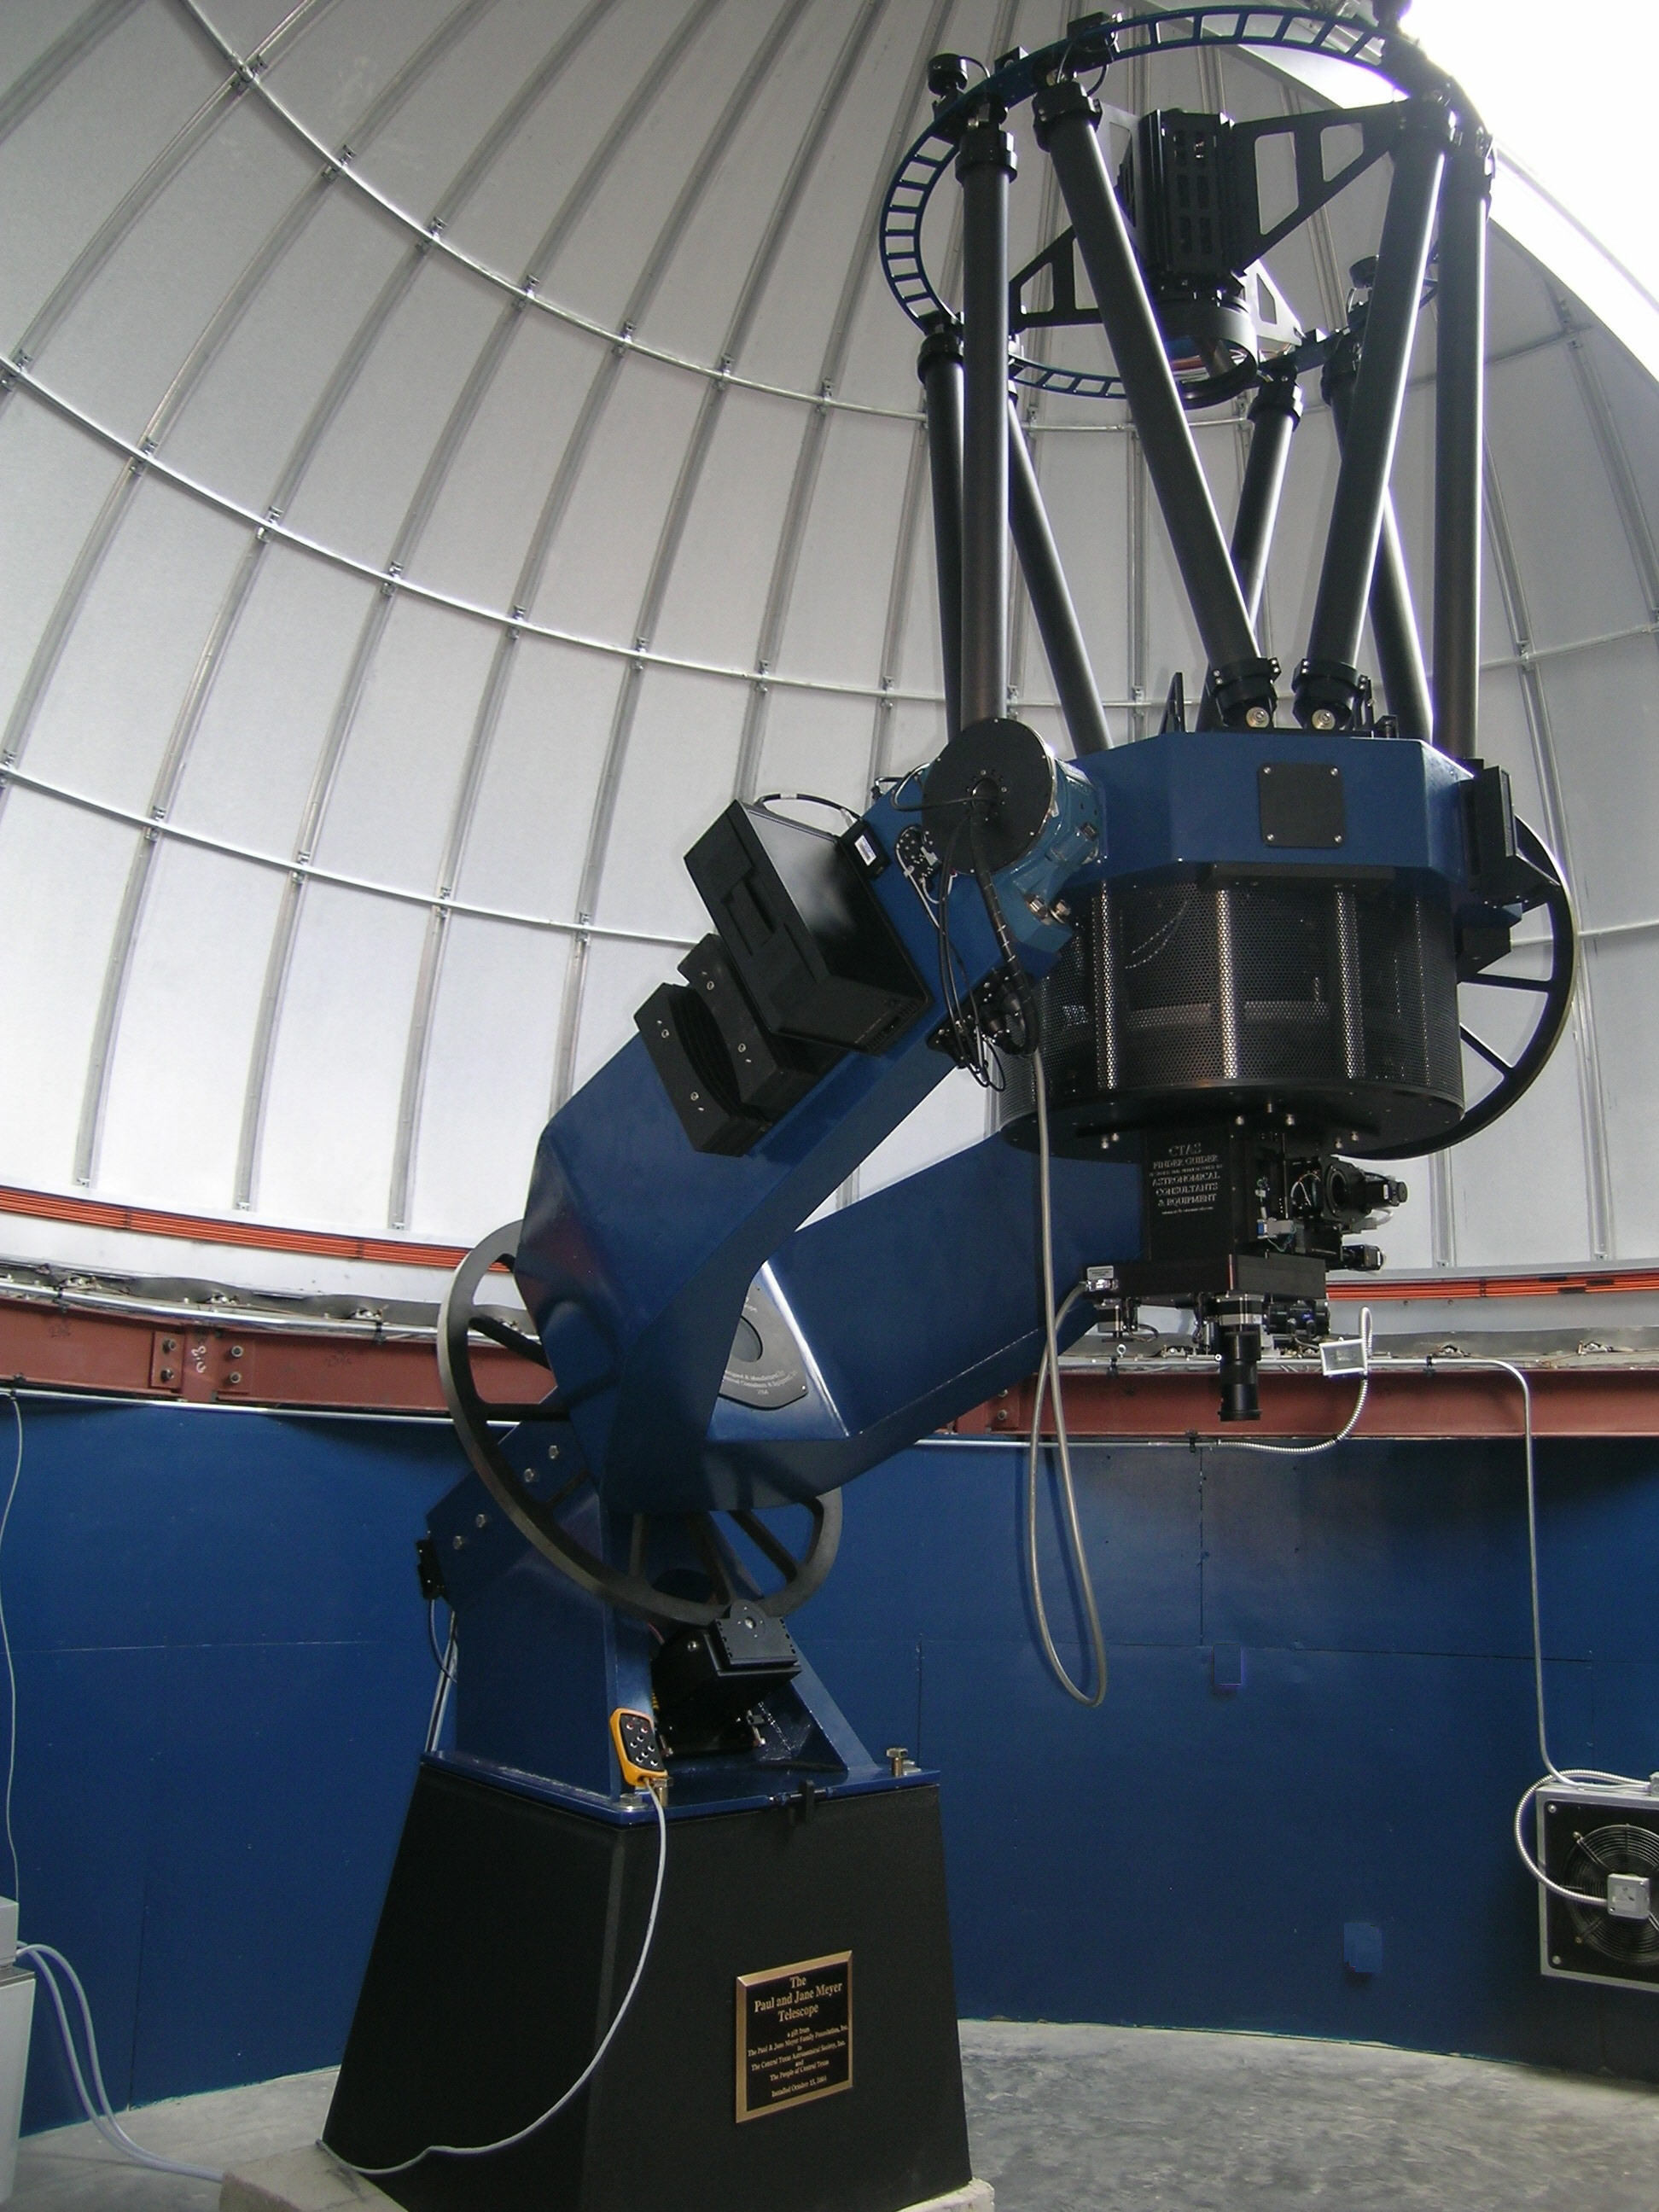 ACE 0.6m Telescope, Central Texas A.S.